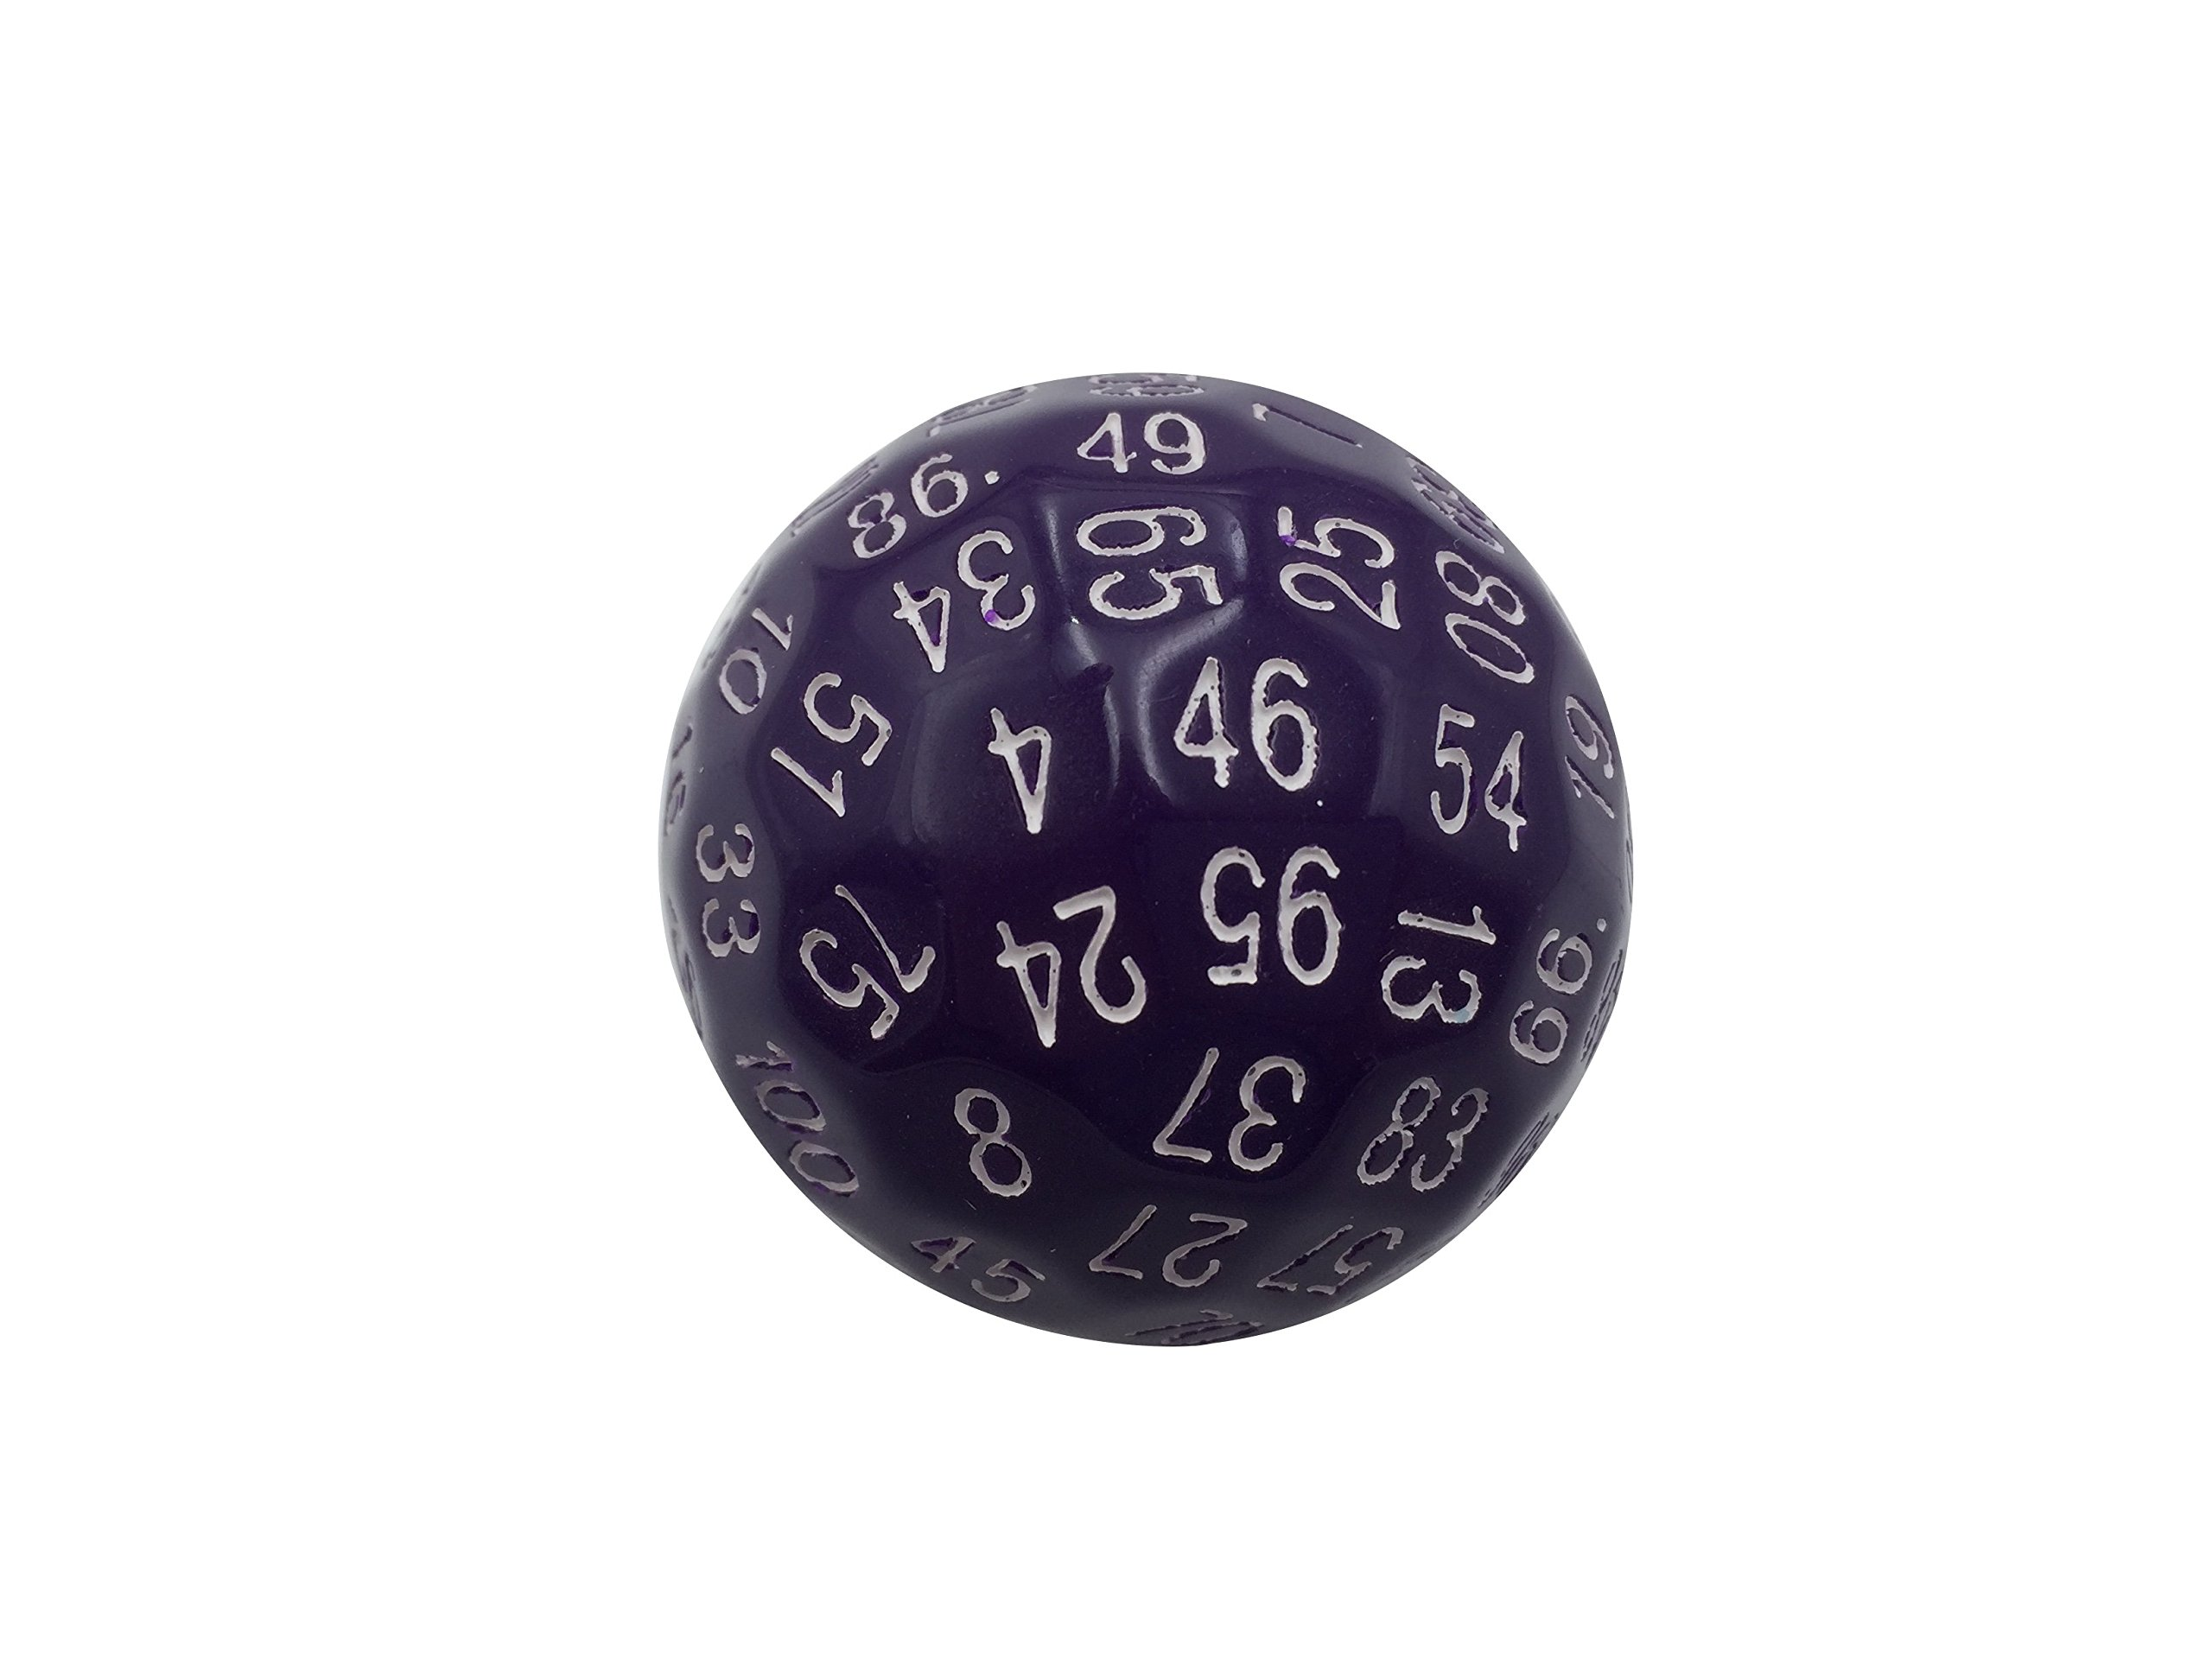 Skull Splitter Dice Single 100 Sided Polyhedral Dice (D100) | Solid Purple Color with White Numbering (45mm)